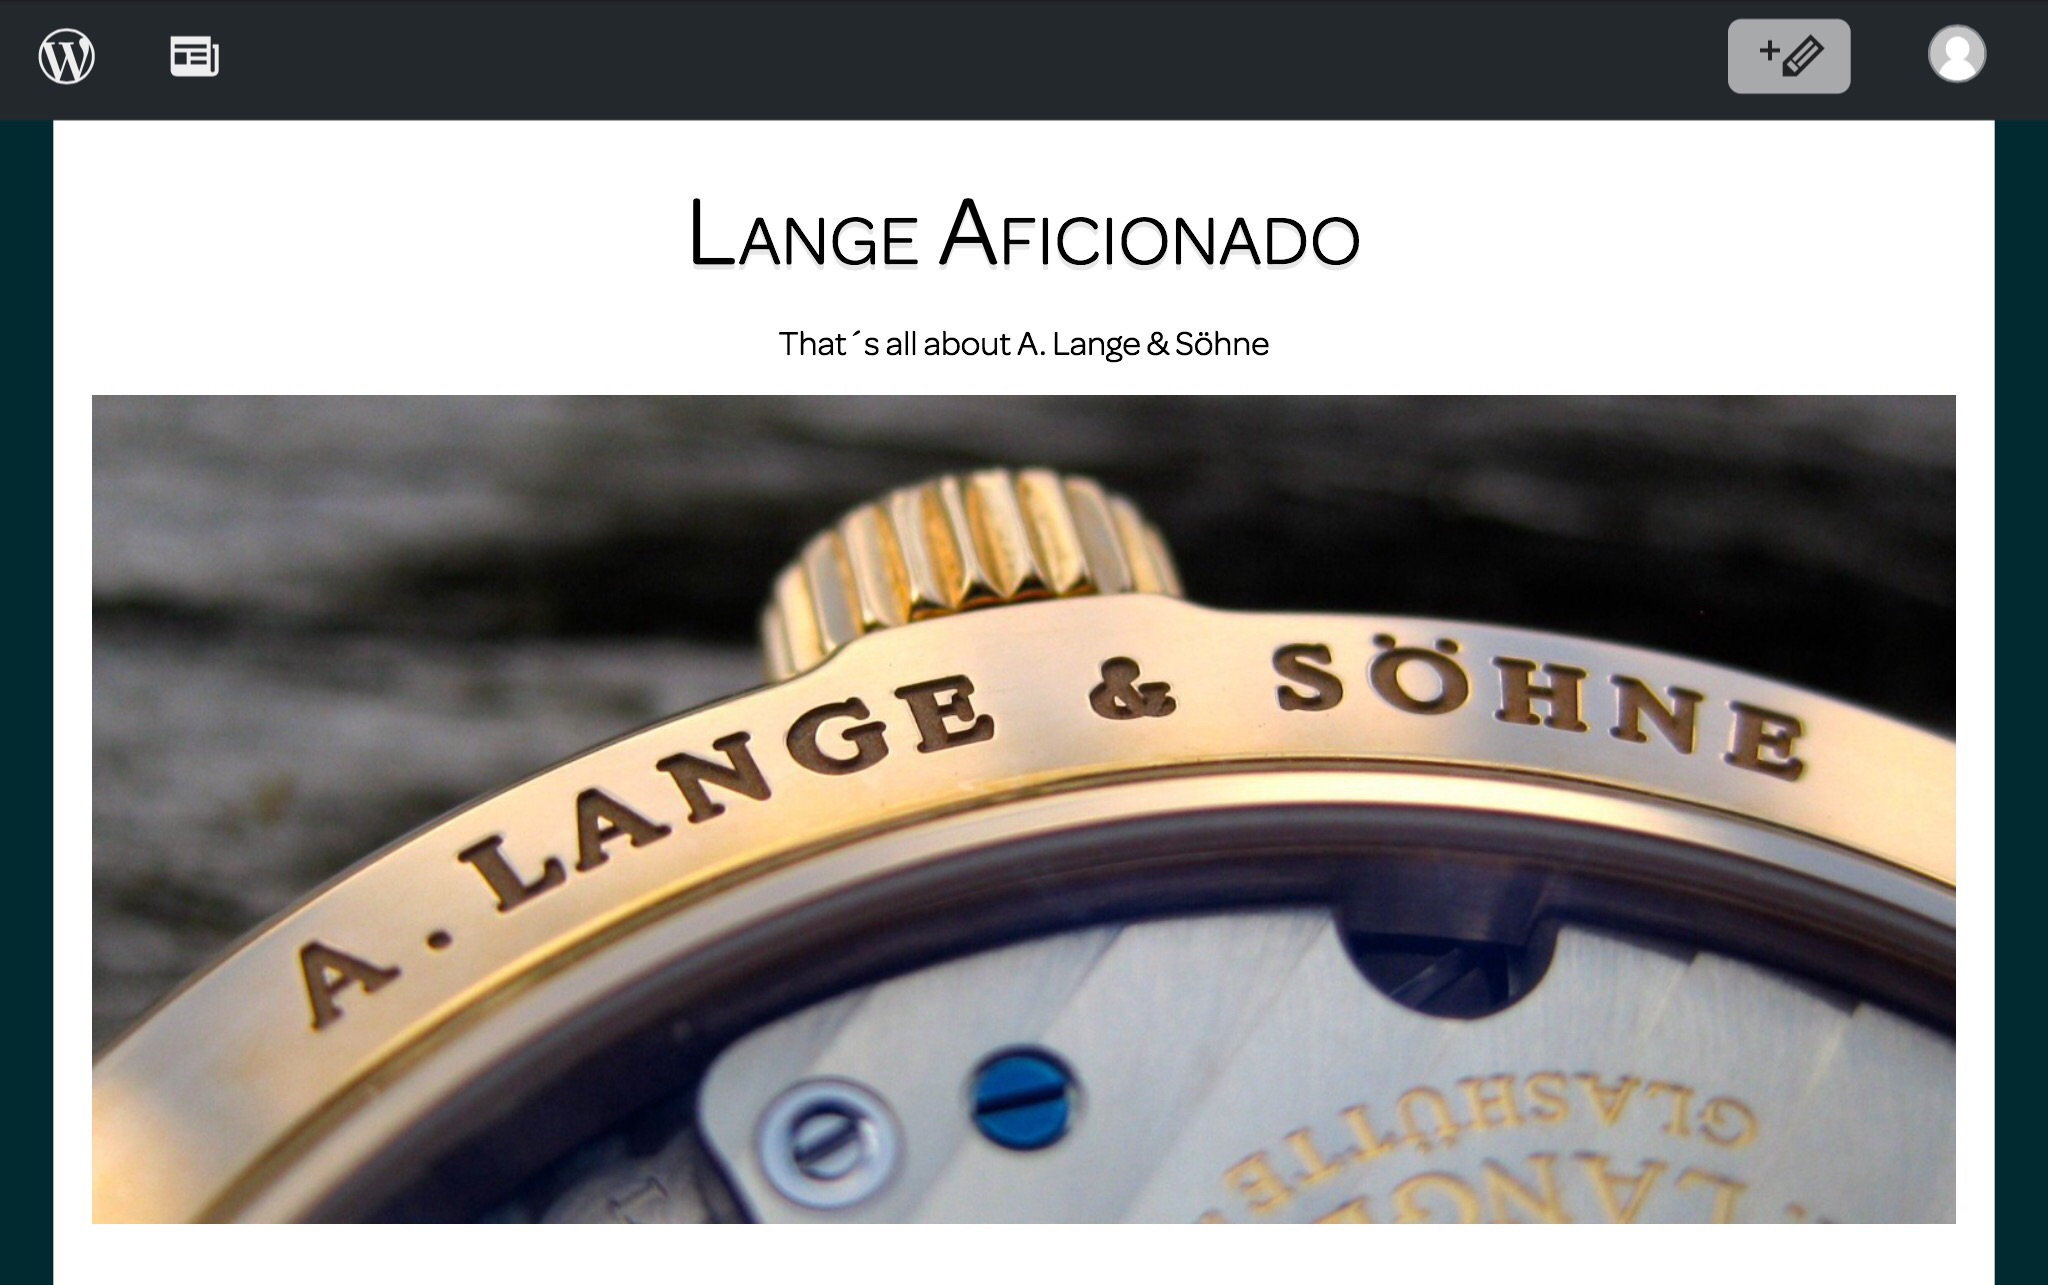 Lange Aficionado – That's all about A. Lange & Söhne